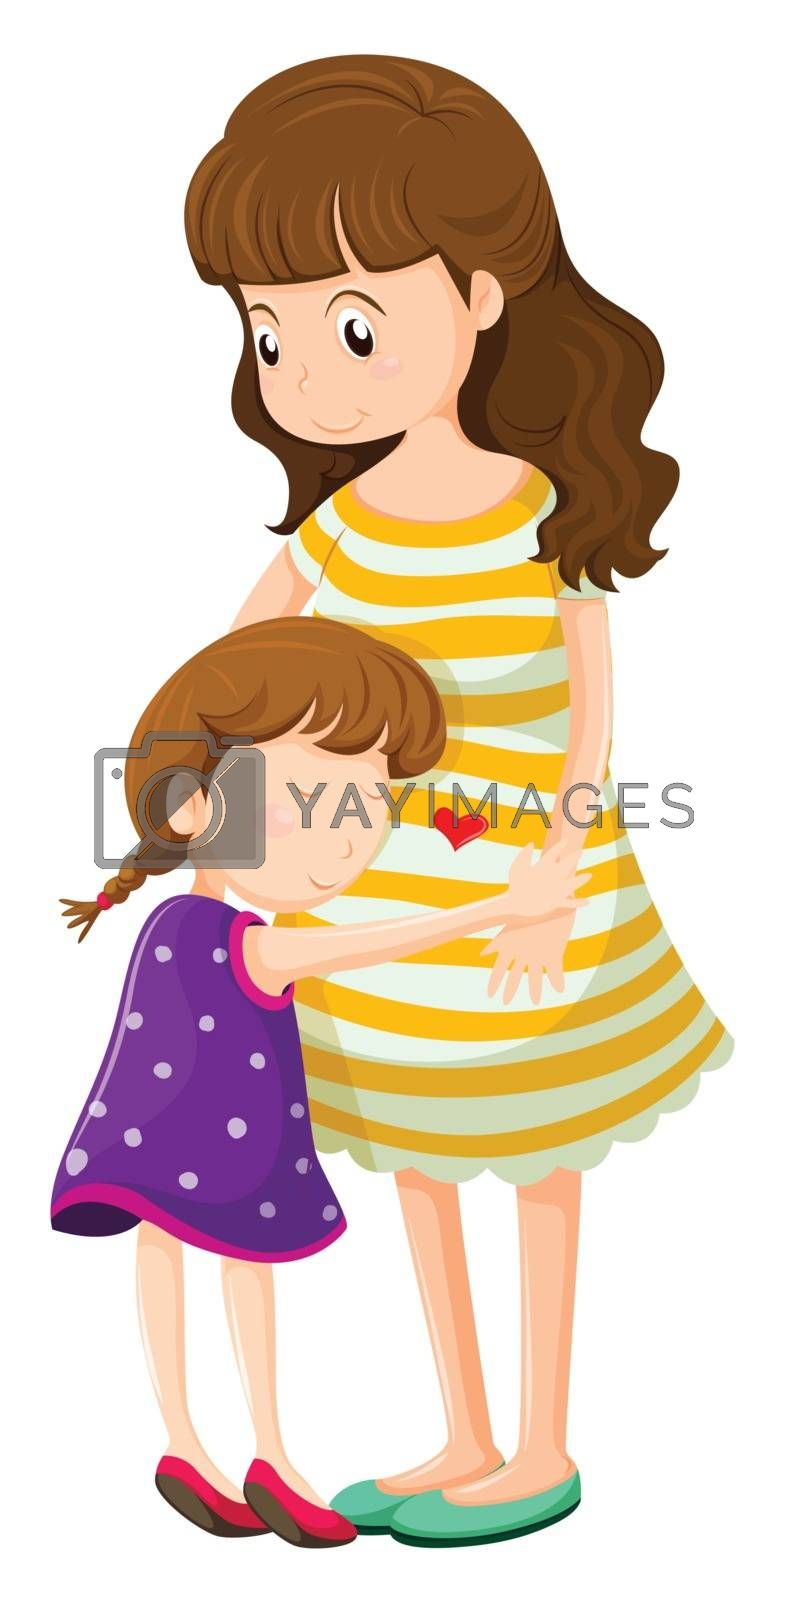 Illustration of a daughter hugging her mother on a white background